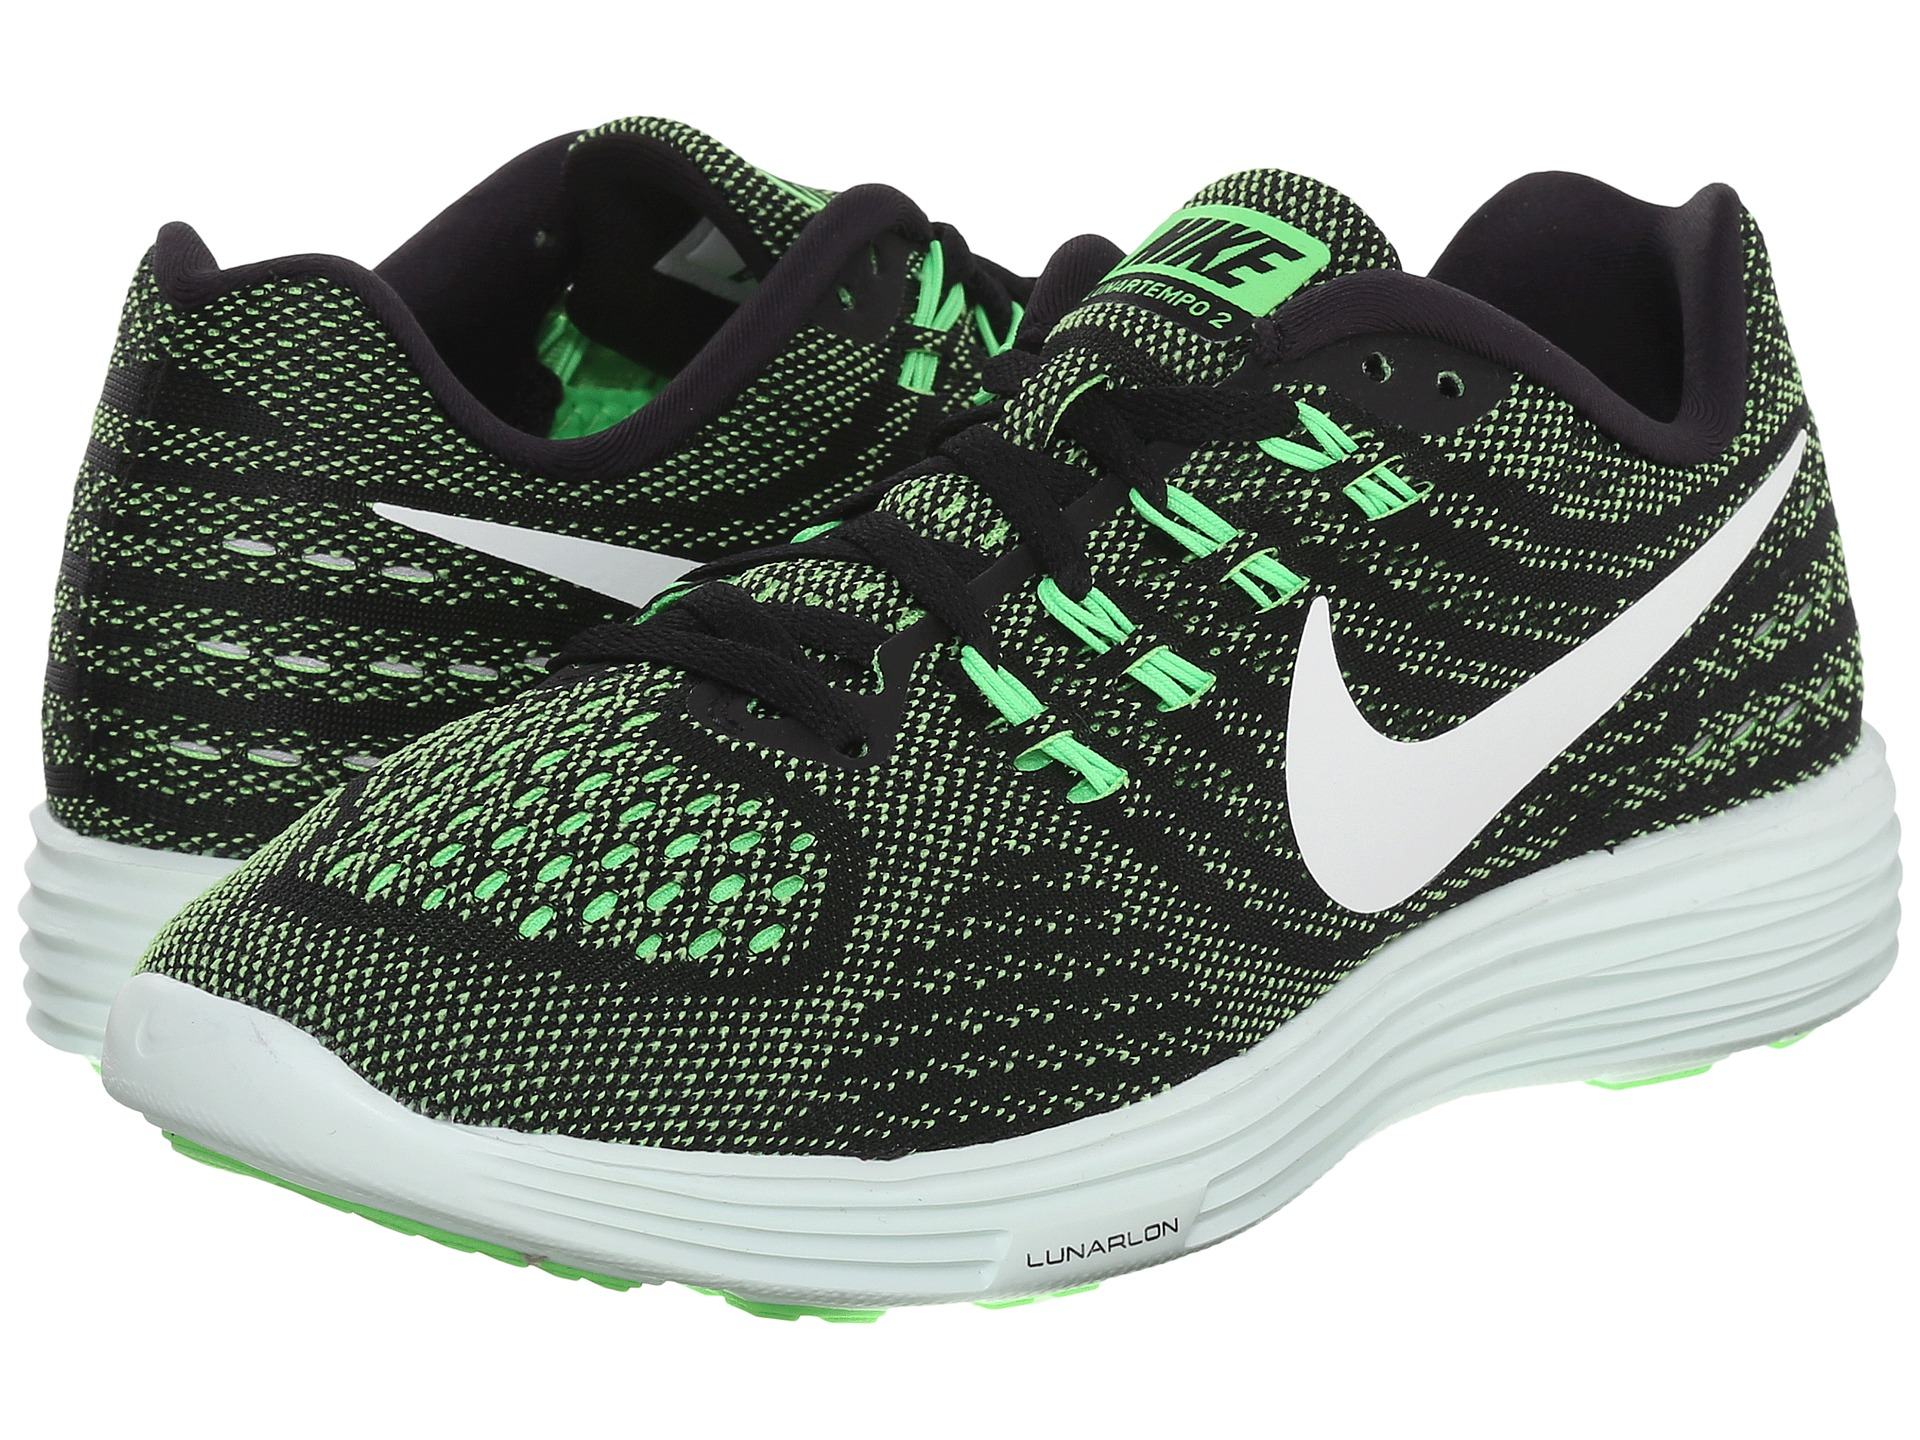 Nike Lunartempo 2 Print Sz 10 Photo Blue Green Lunar Lunarglide